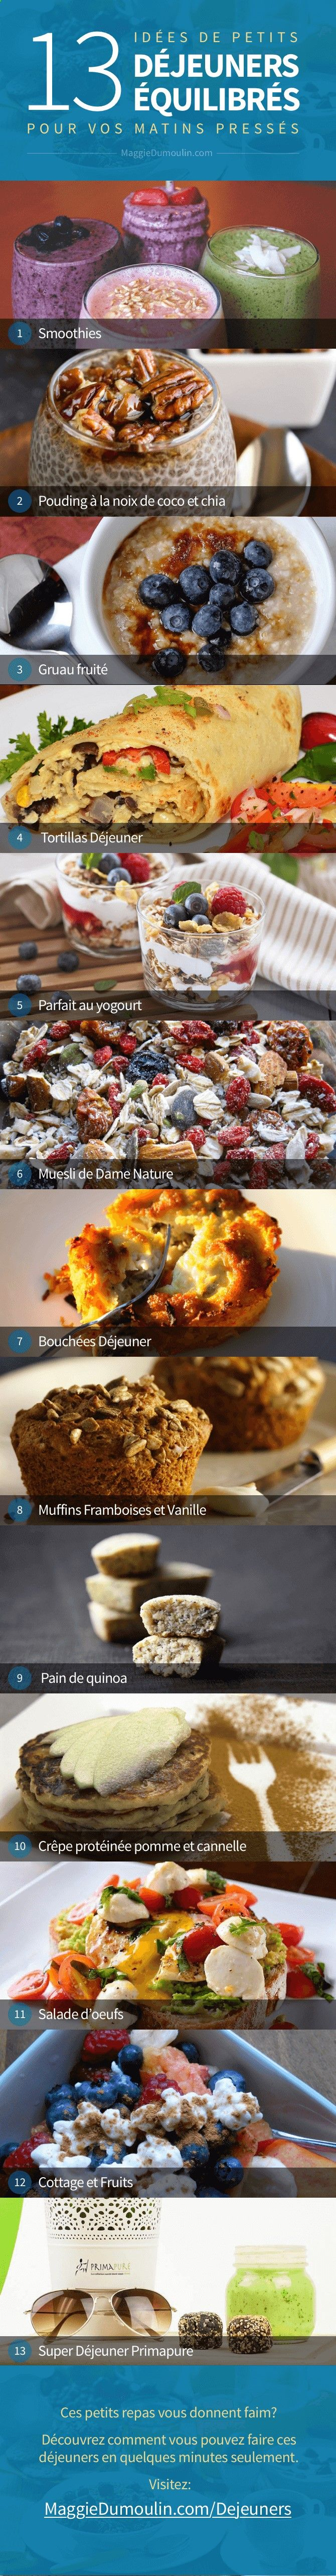 The Big Diabetes Lie Recipes-Diet - 13 idées de petits déjeuners équilibrés pour vos matins pressés - Doctors at the International Council for Truth in Medicine are revealing the truth about diabetes that has been suppressed for over 21 years.